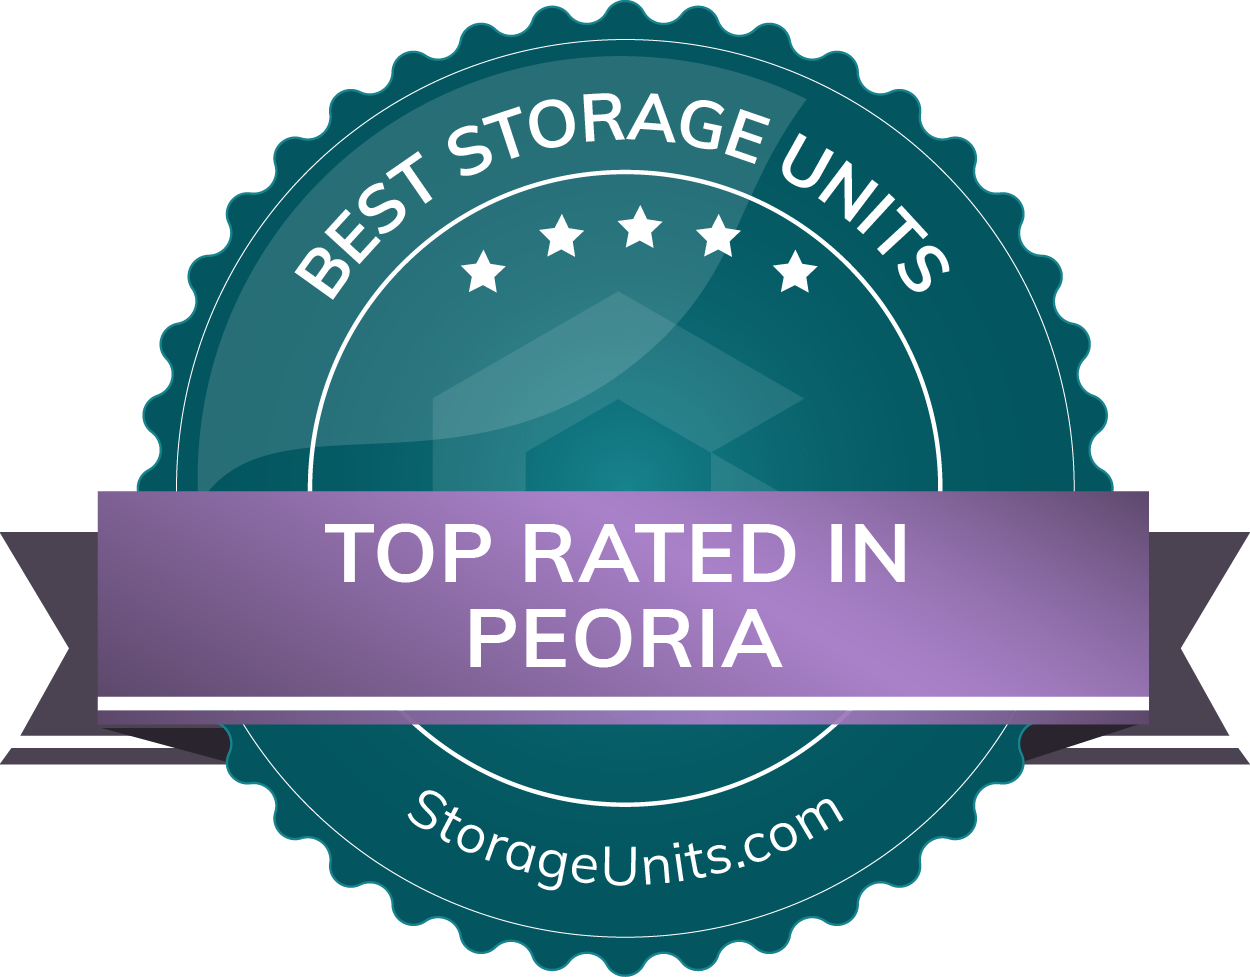 Best Self Storage Units in Peoria, IL